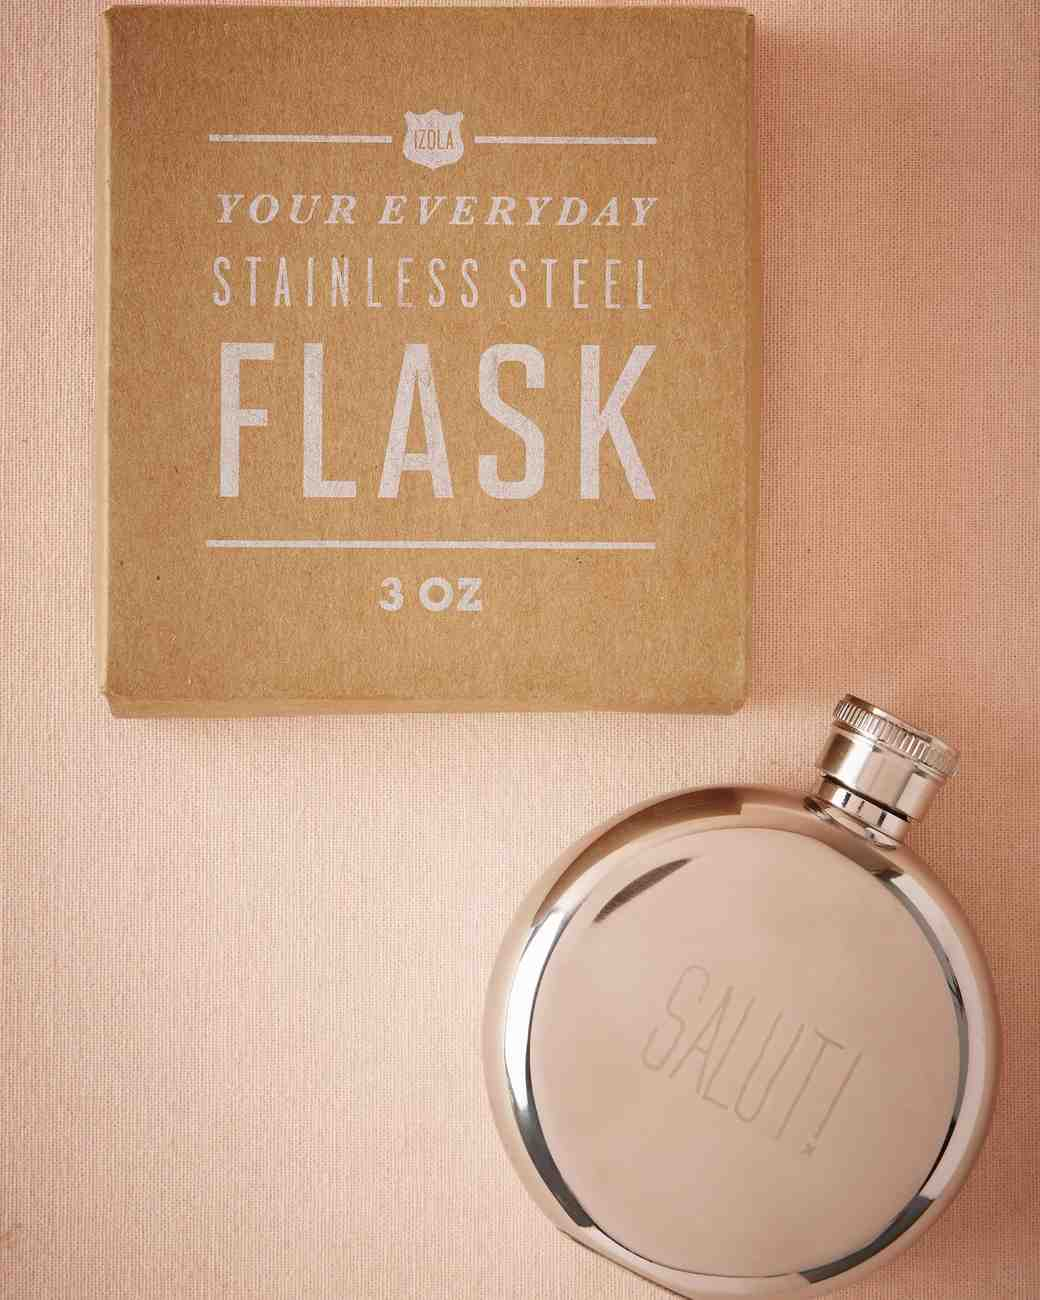 bridal-party-gifts-izola-stainless-steel-flask-0416.jpg